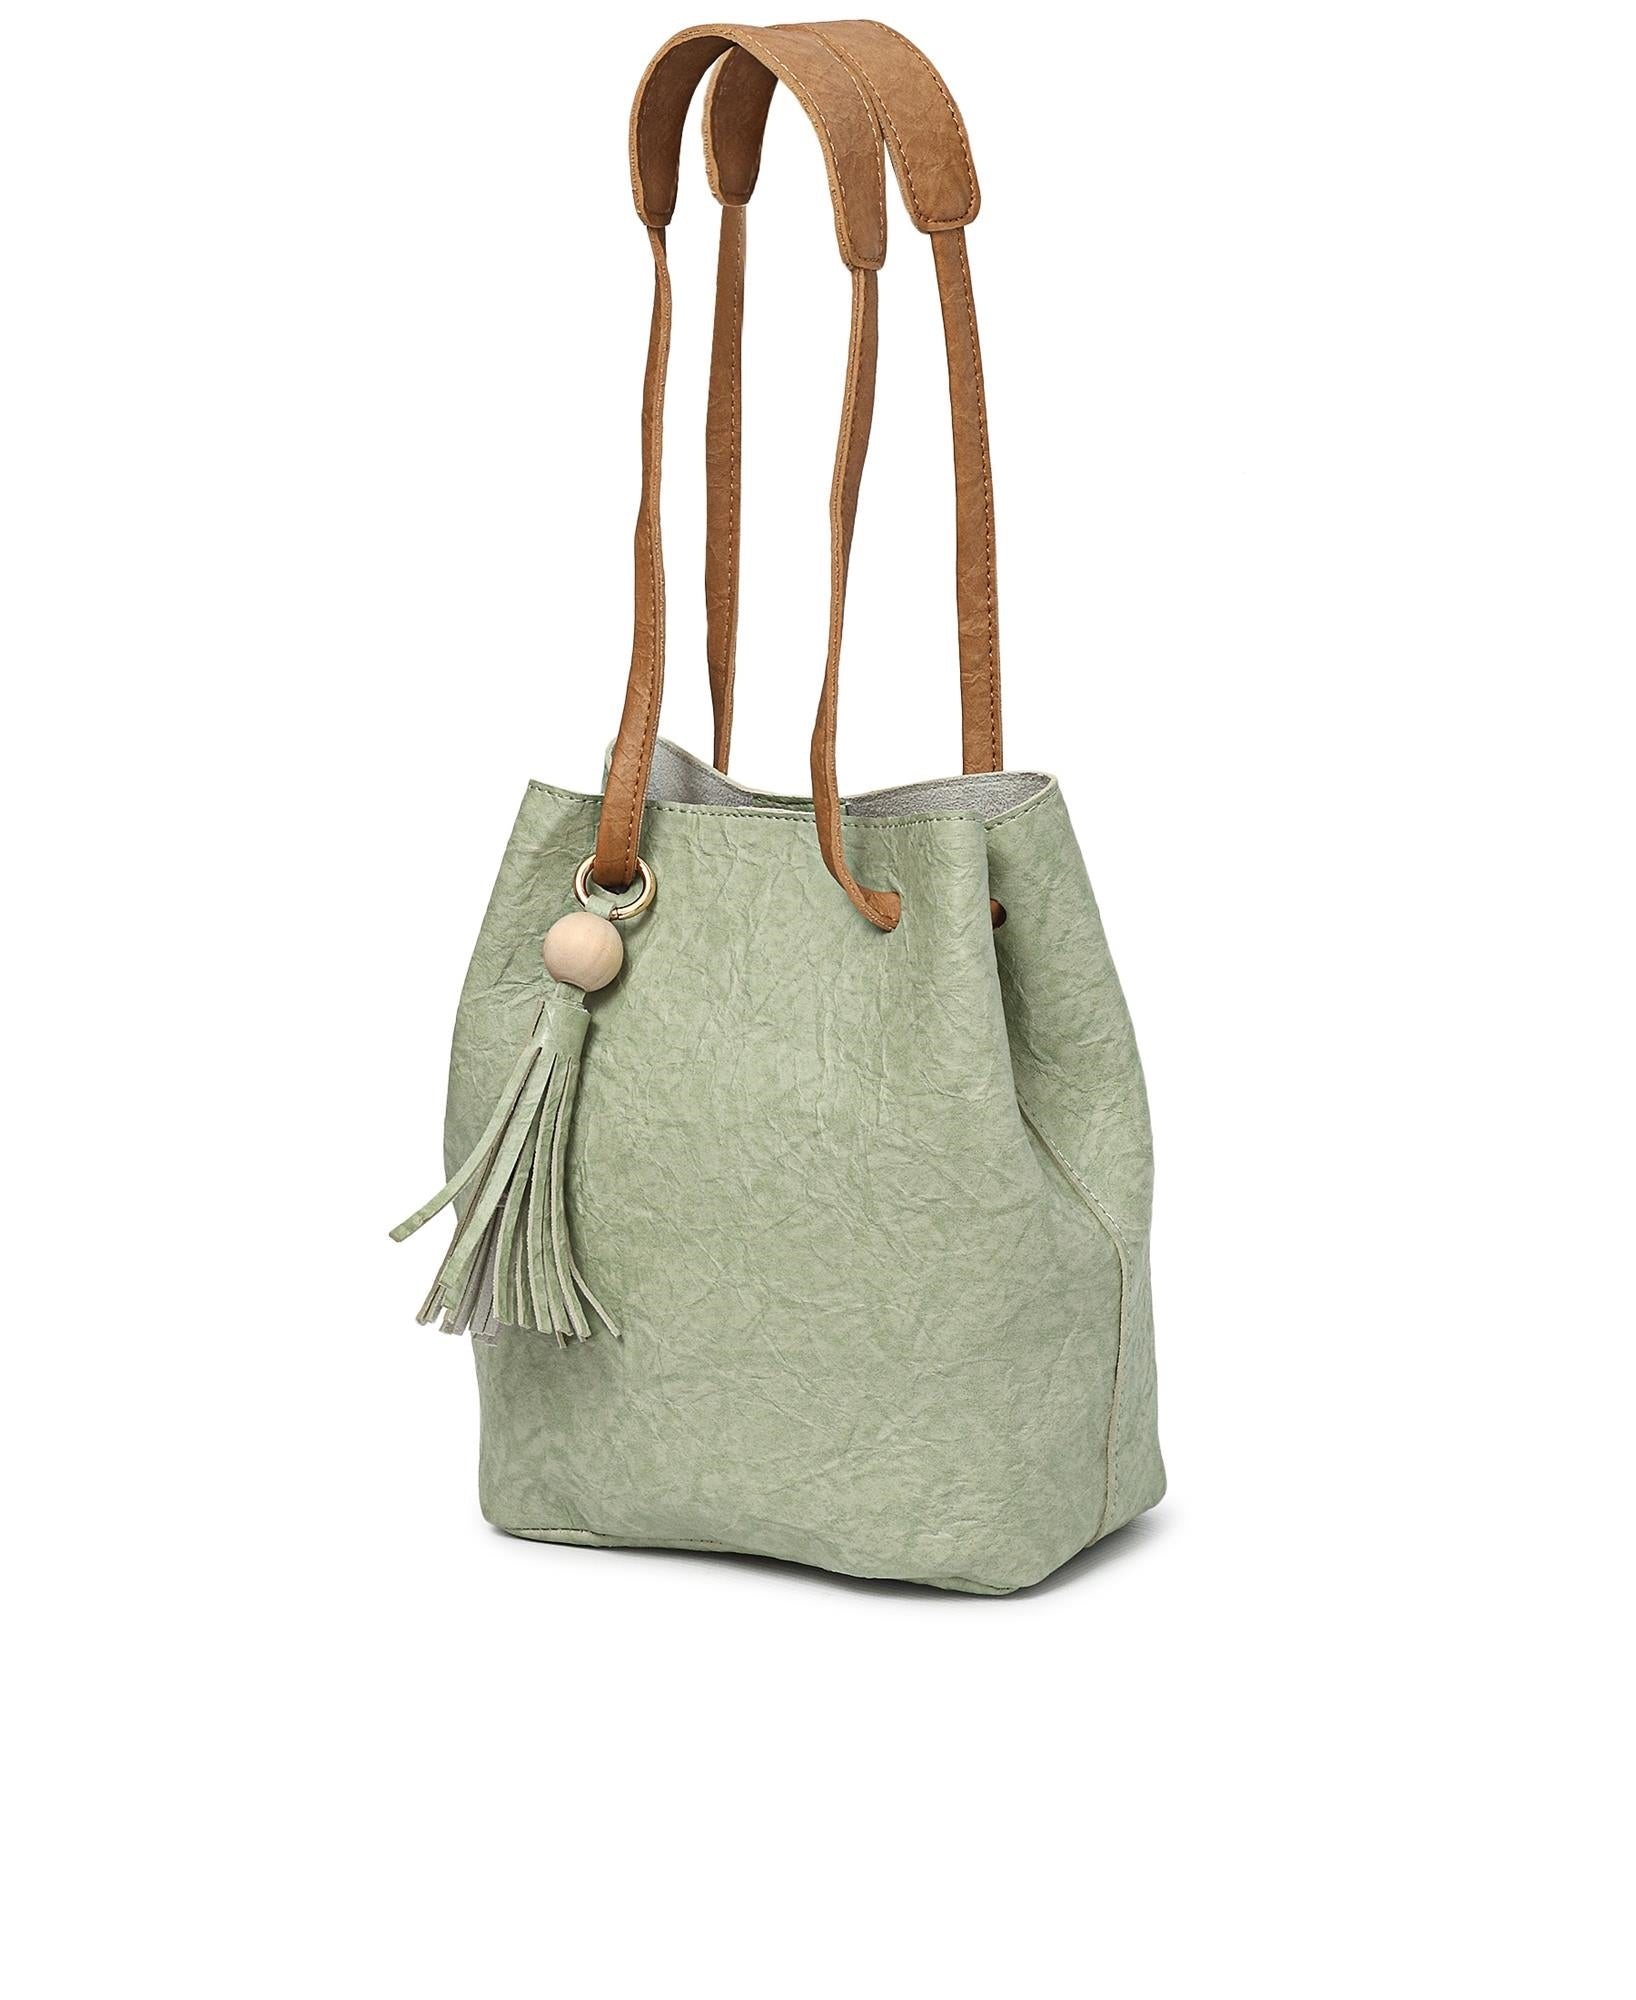 Shopper Bag - Mint